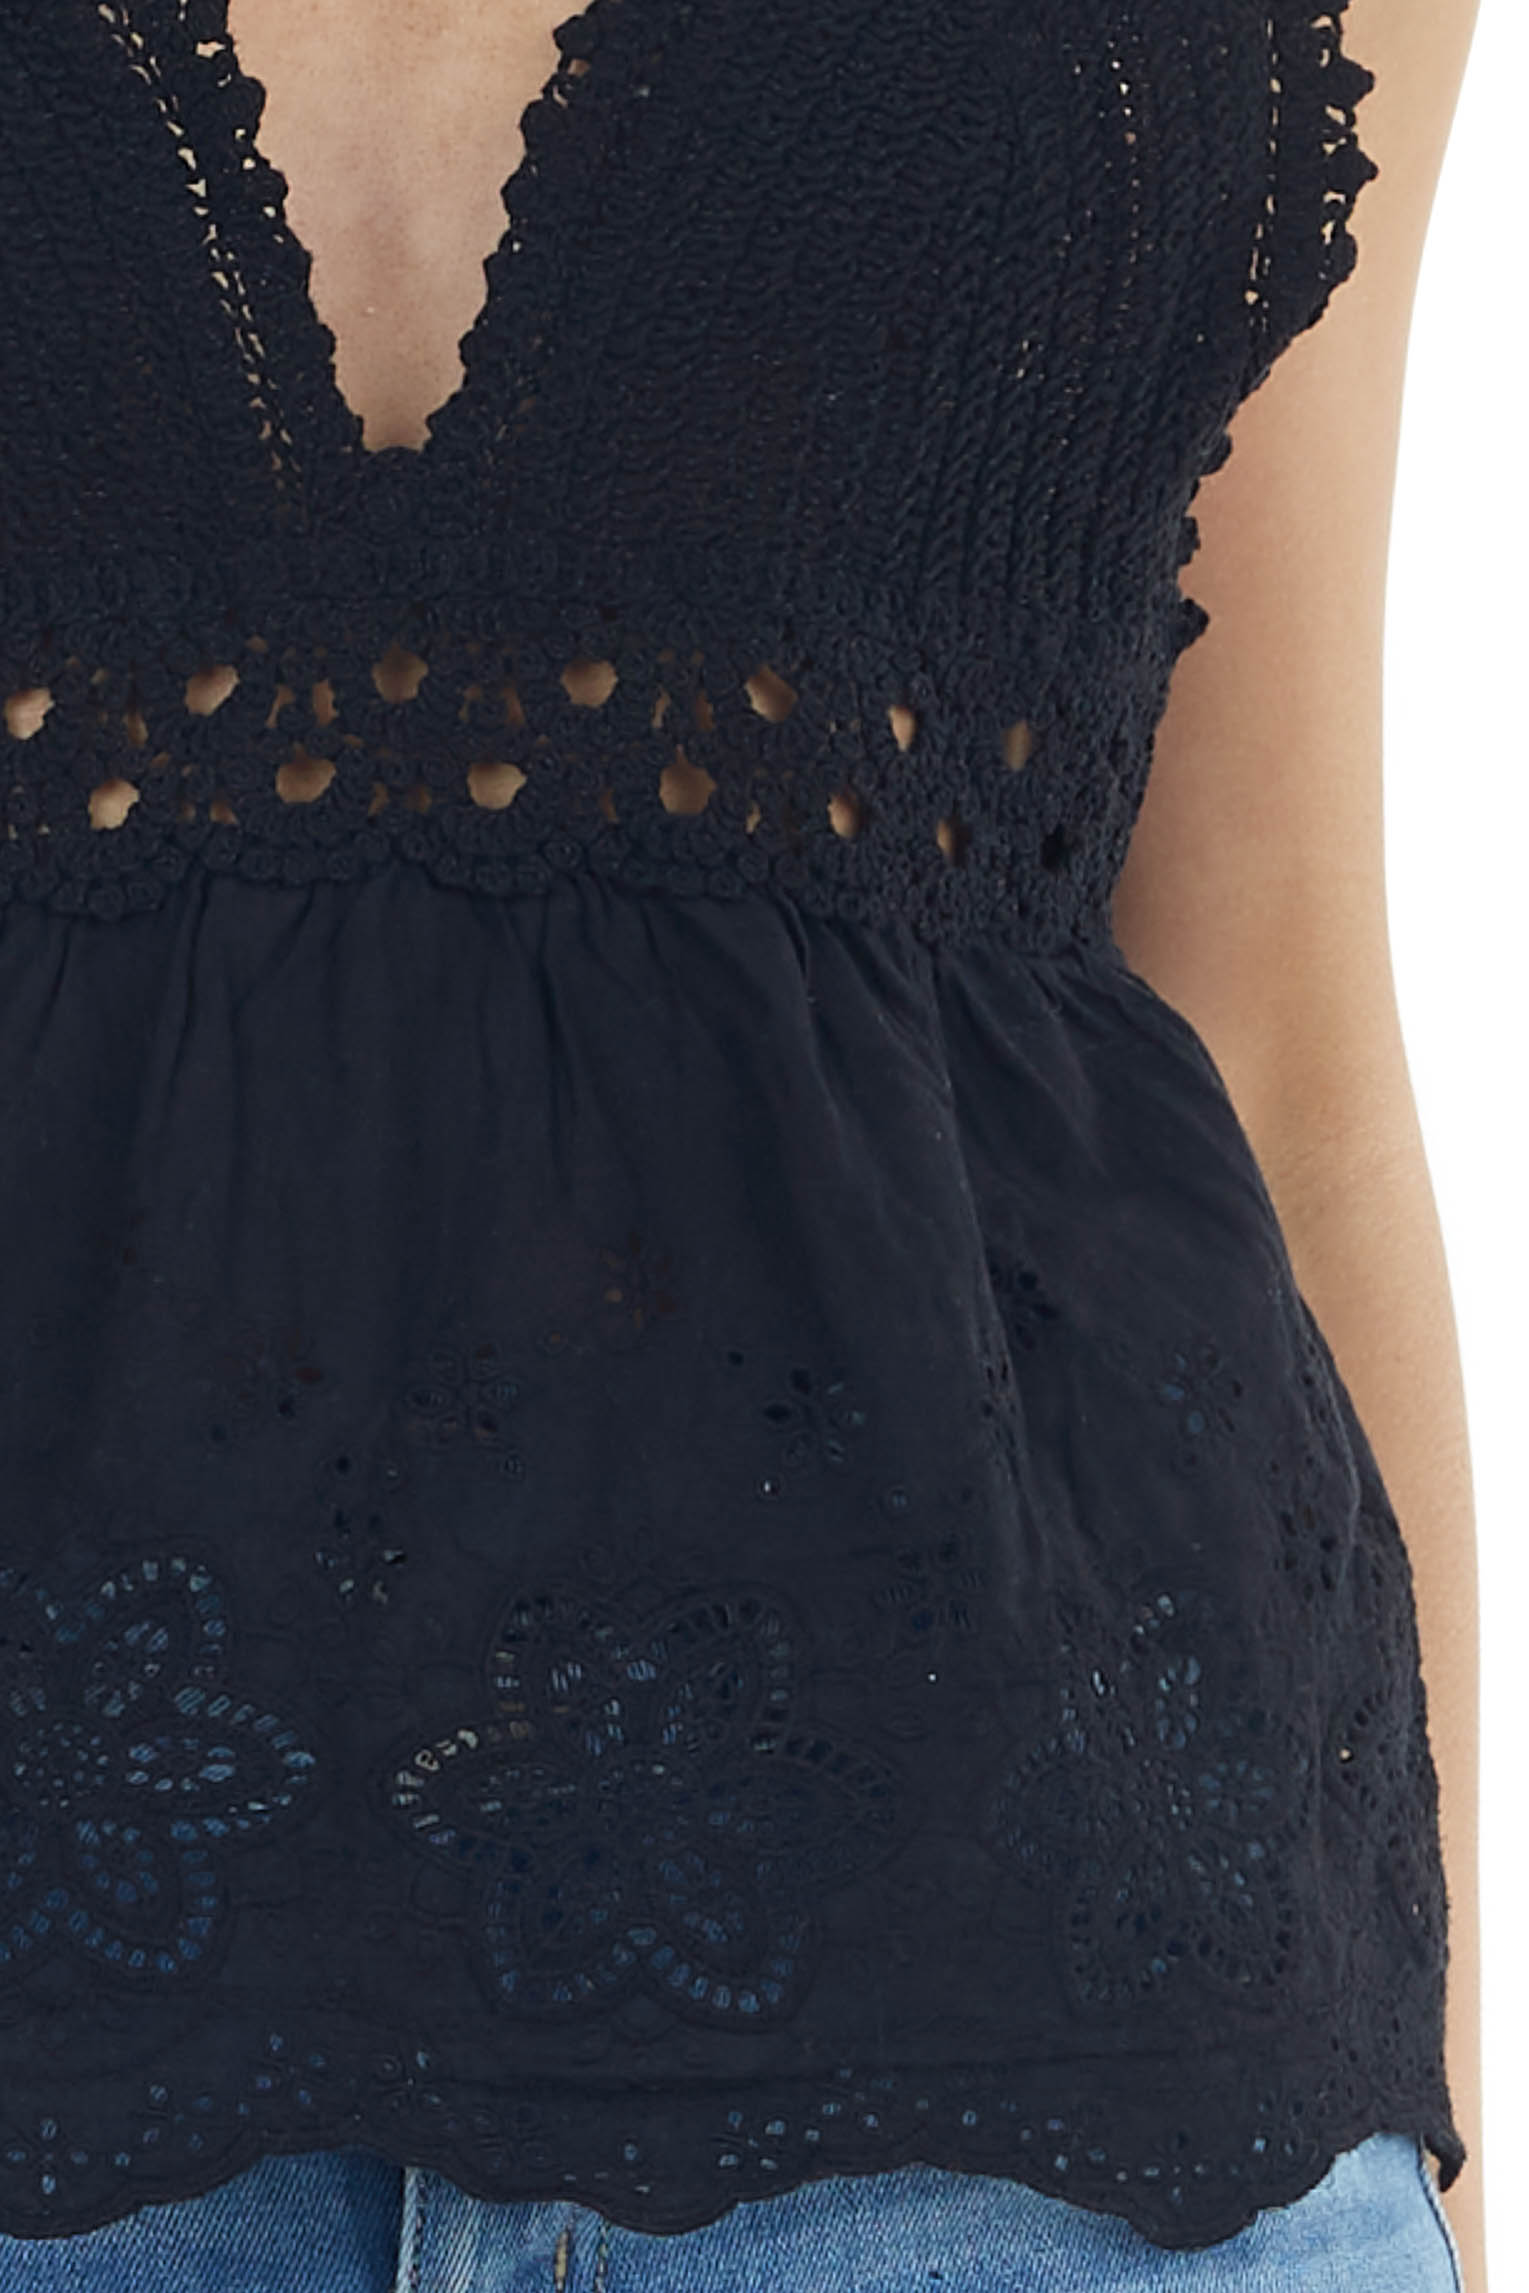 Black Crochet Sleeveless Top with Floral Lace Detail